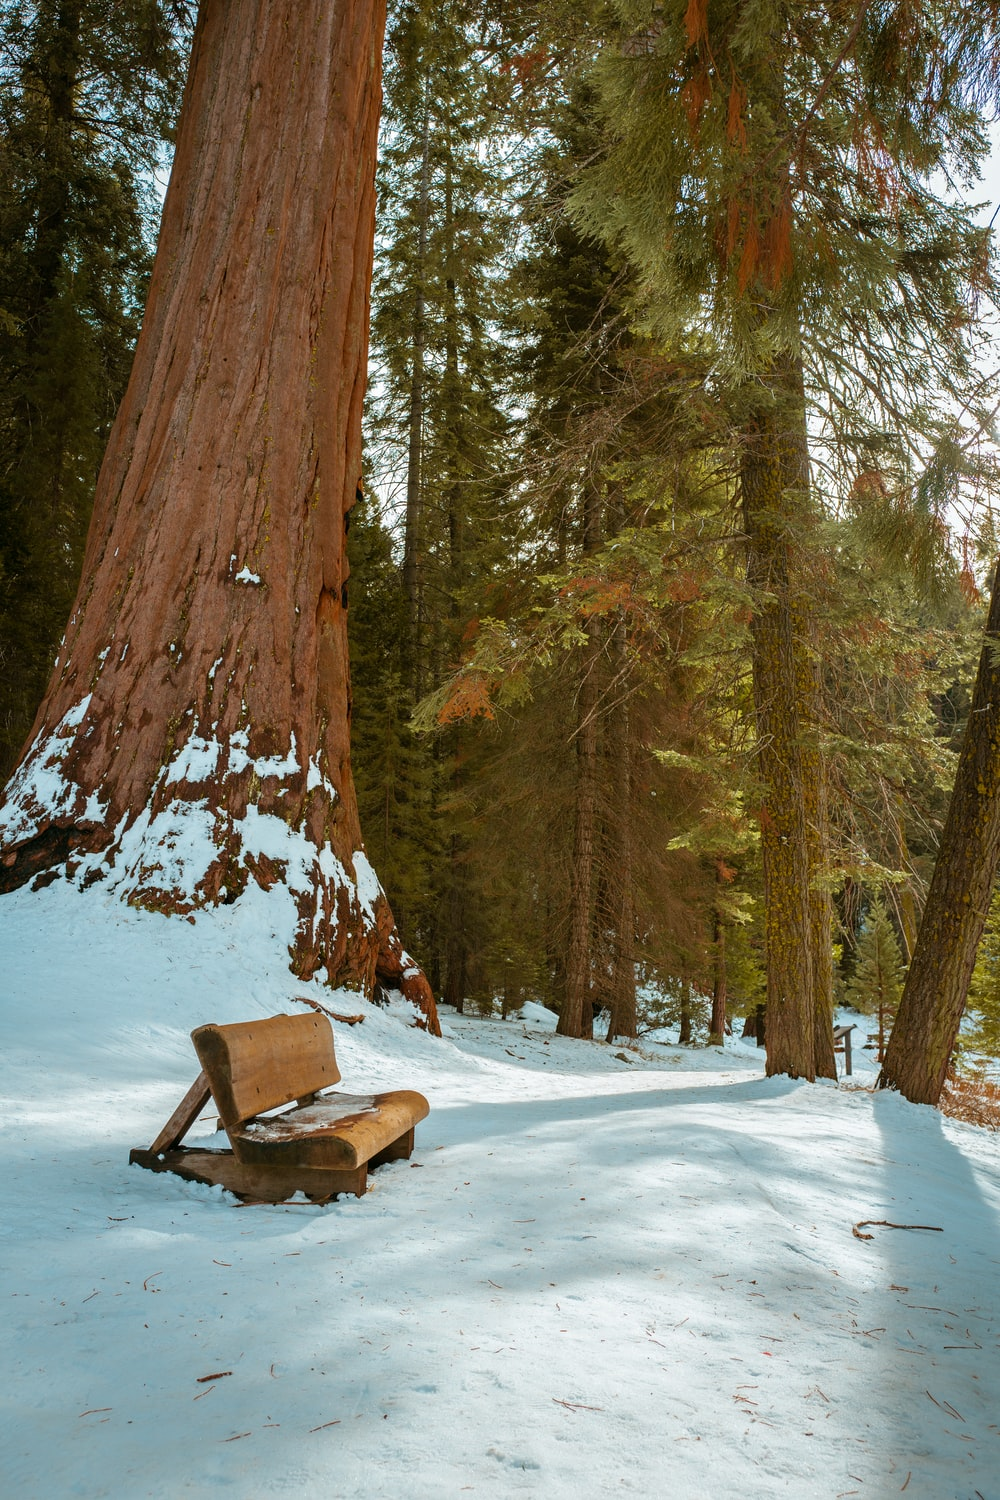 brown wooden bench on snow covered ground near brown trees during daytime